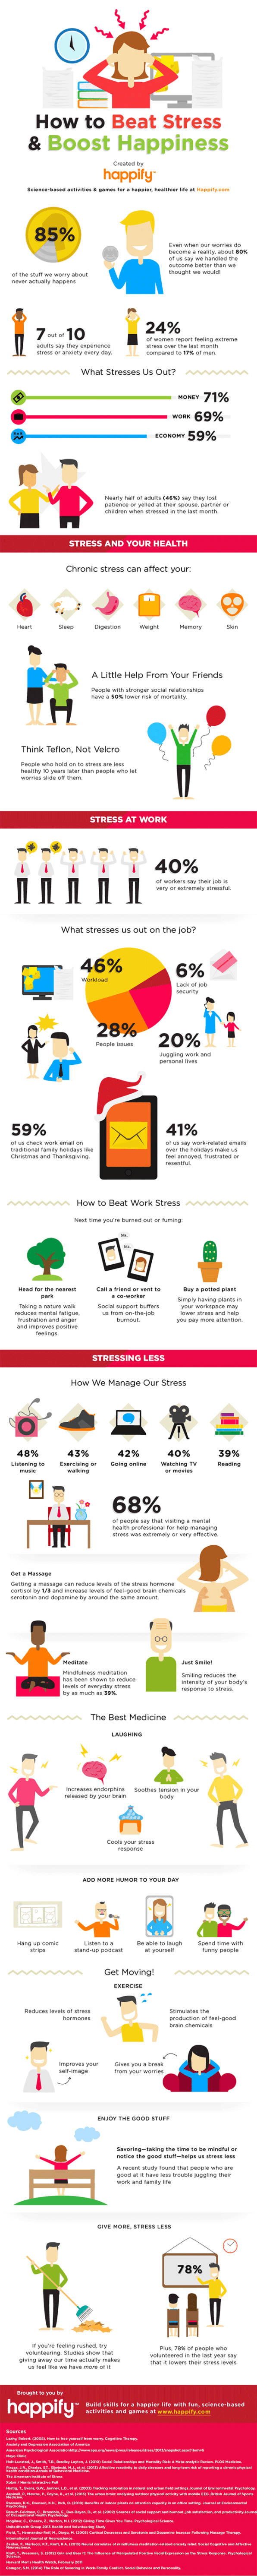 Infographic: How To Feel Happier And Less Stressed